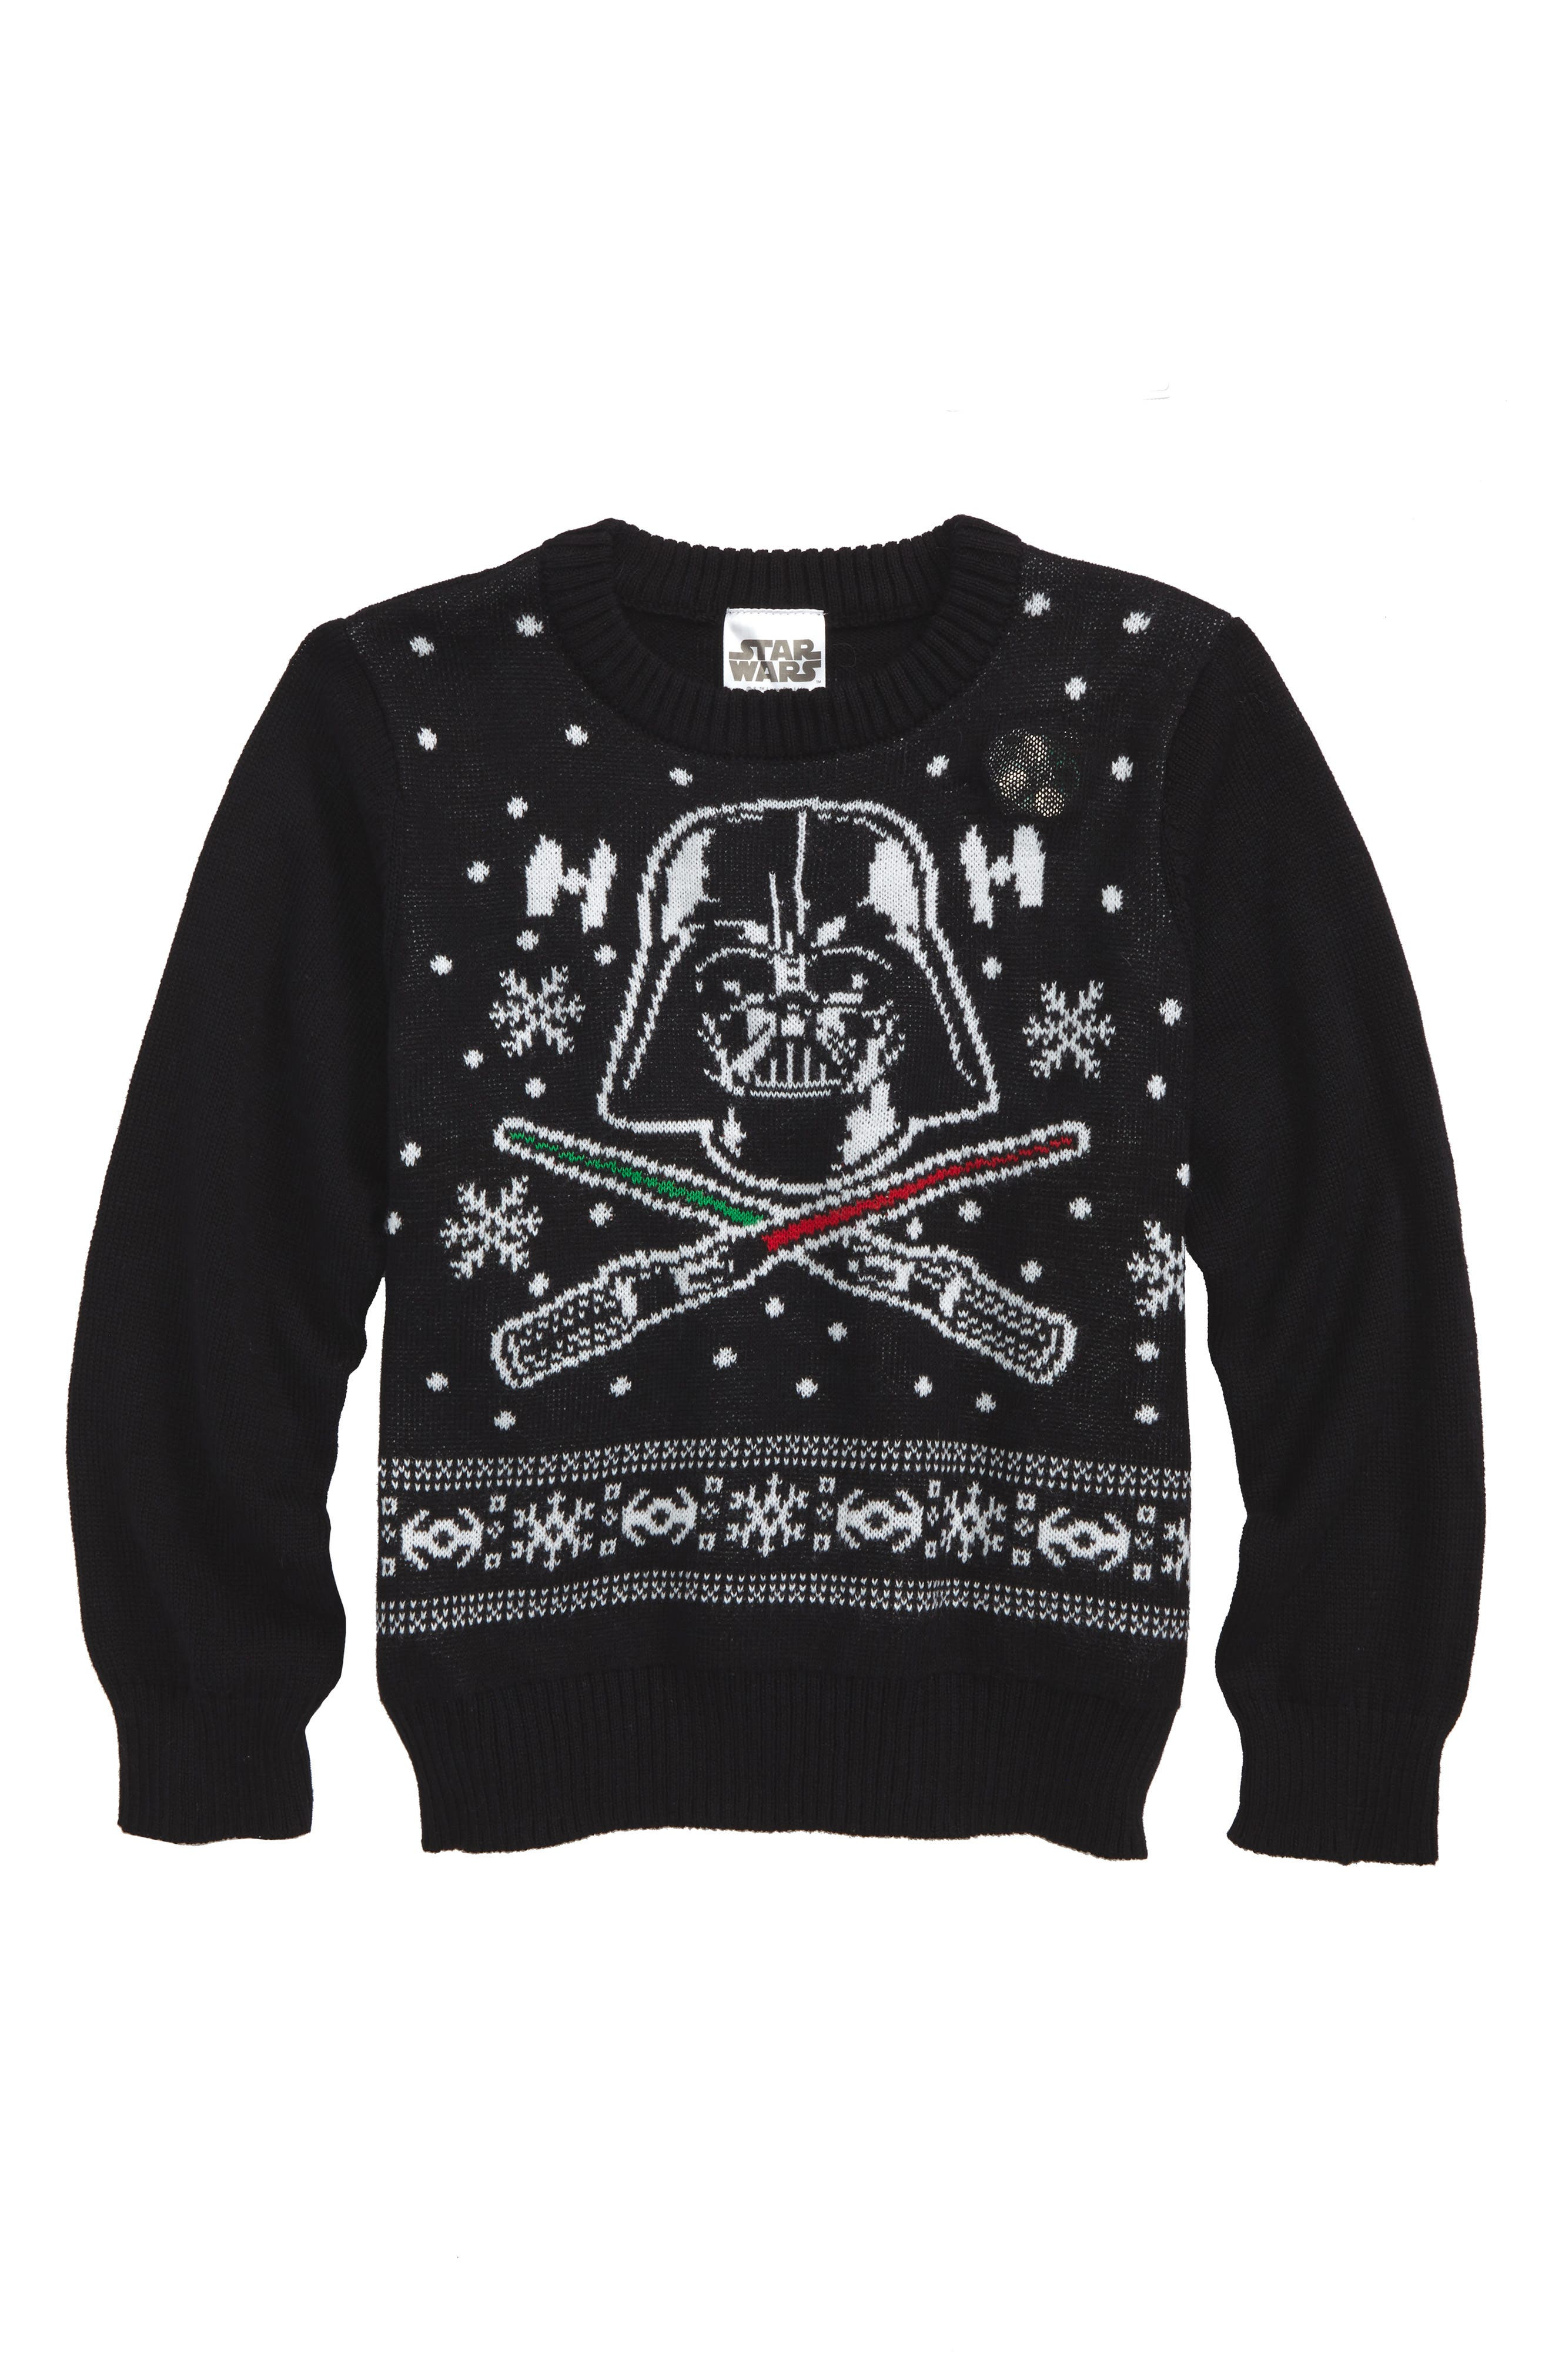 Jem Star Wars™ - Darth Vader Musical Holiday Sweater (Toddler Boys, Little Boys & Big Boys)